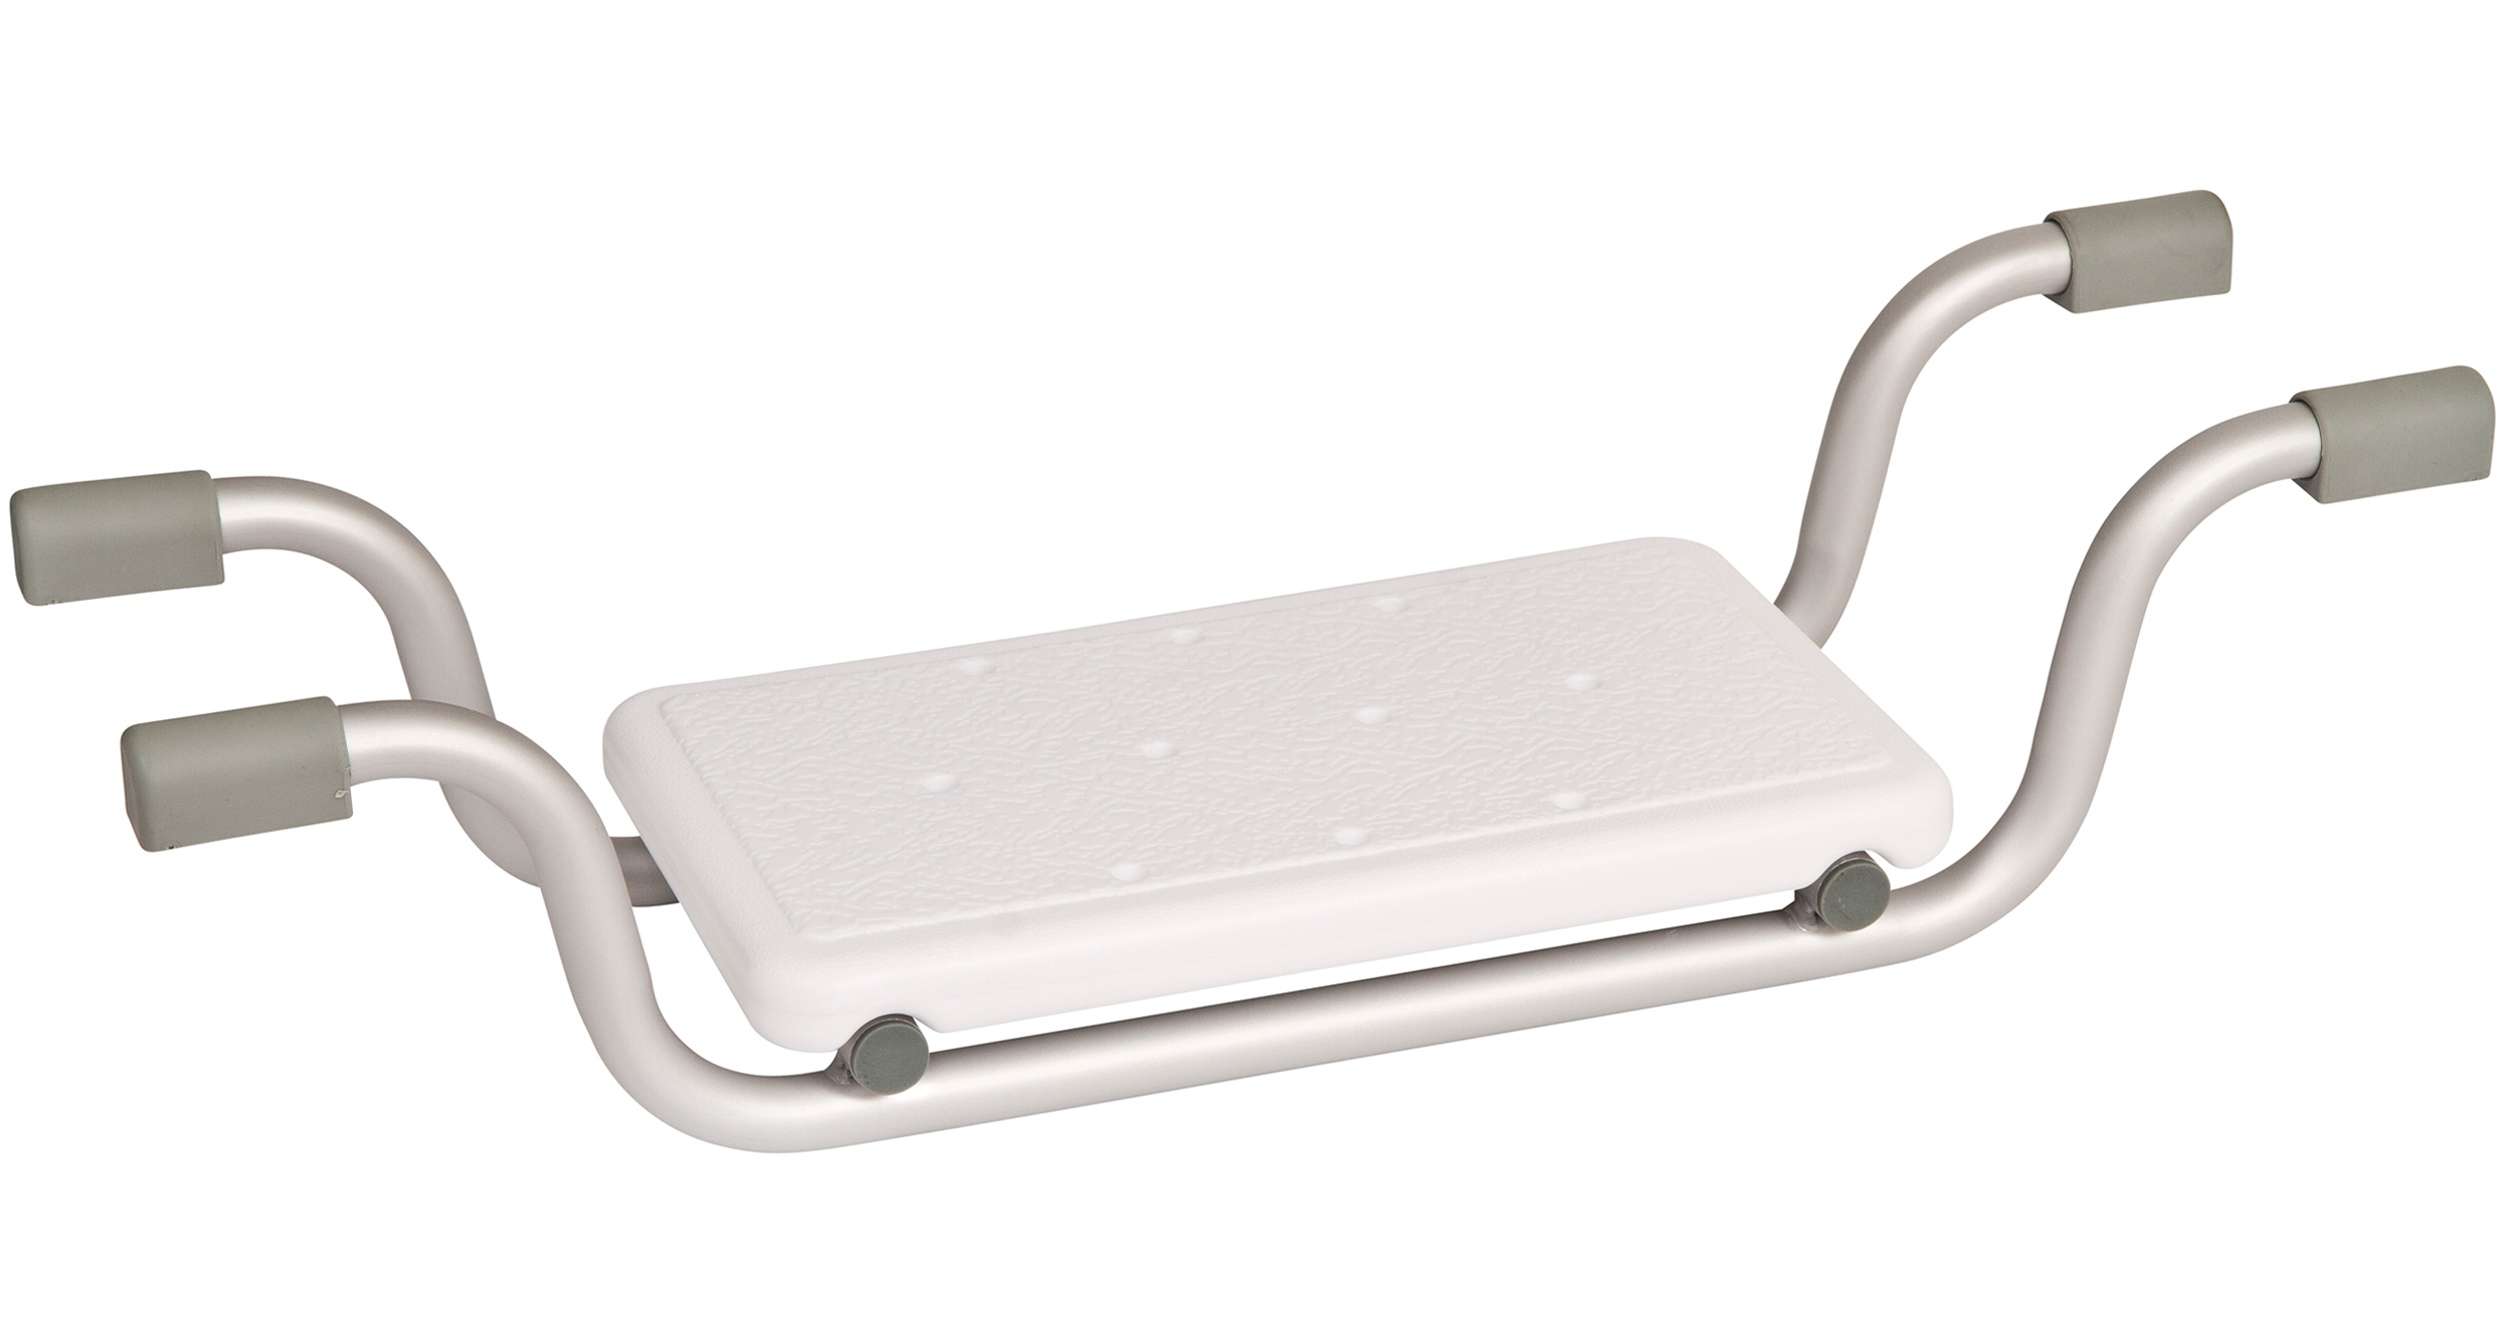 easy fit bath bench seat disabled aid disability support shower safety bathtub ebay